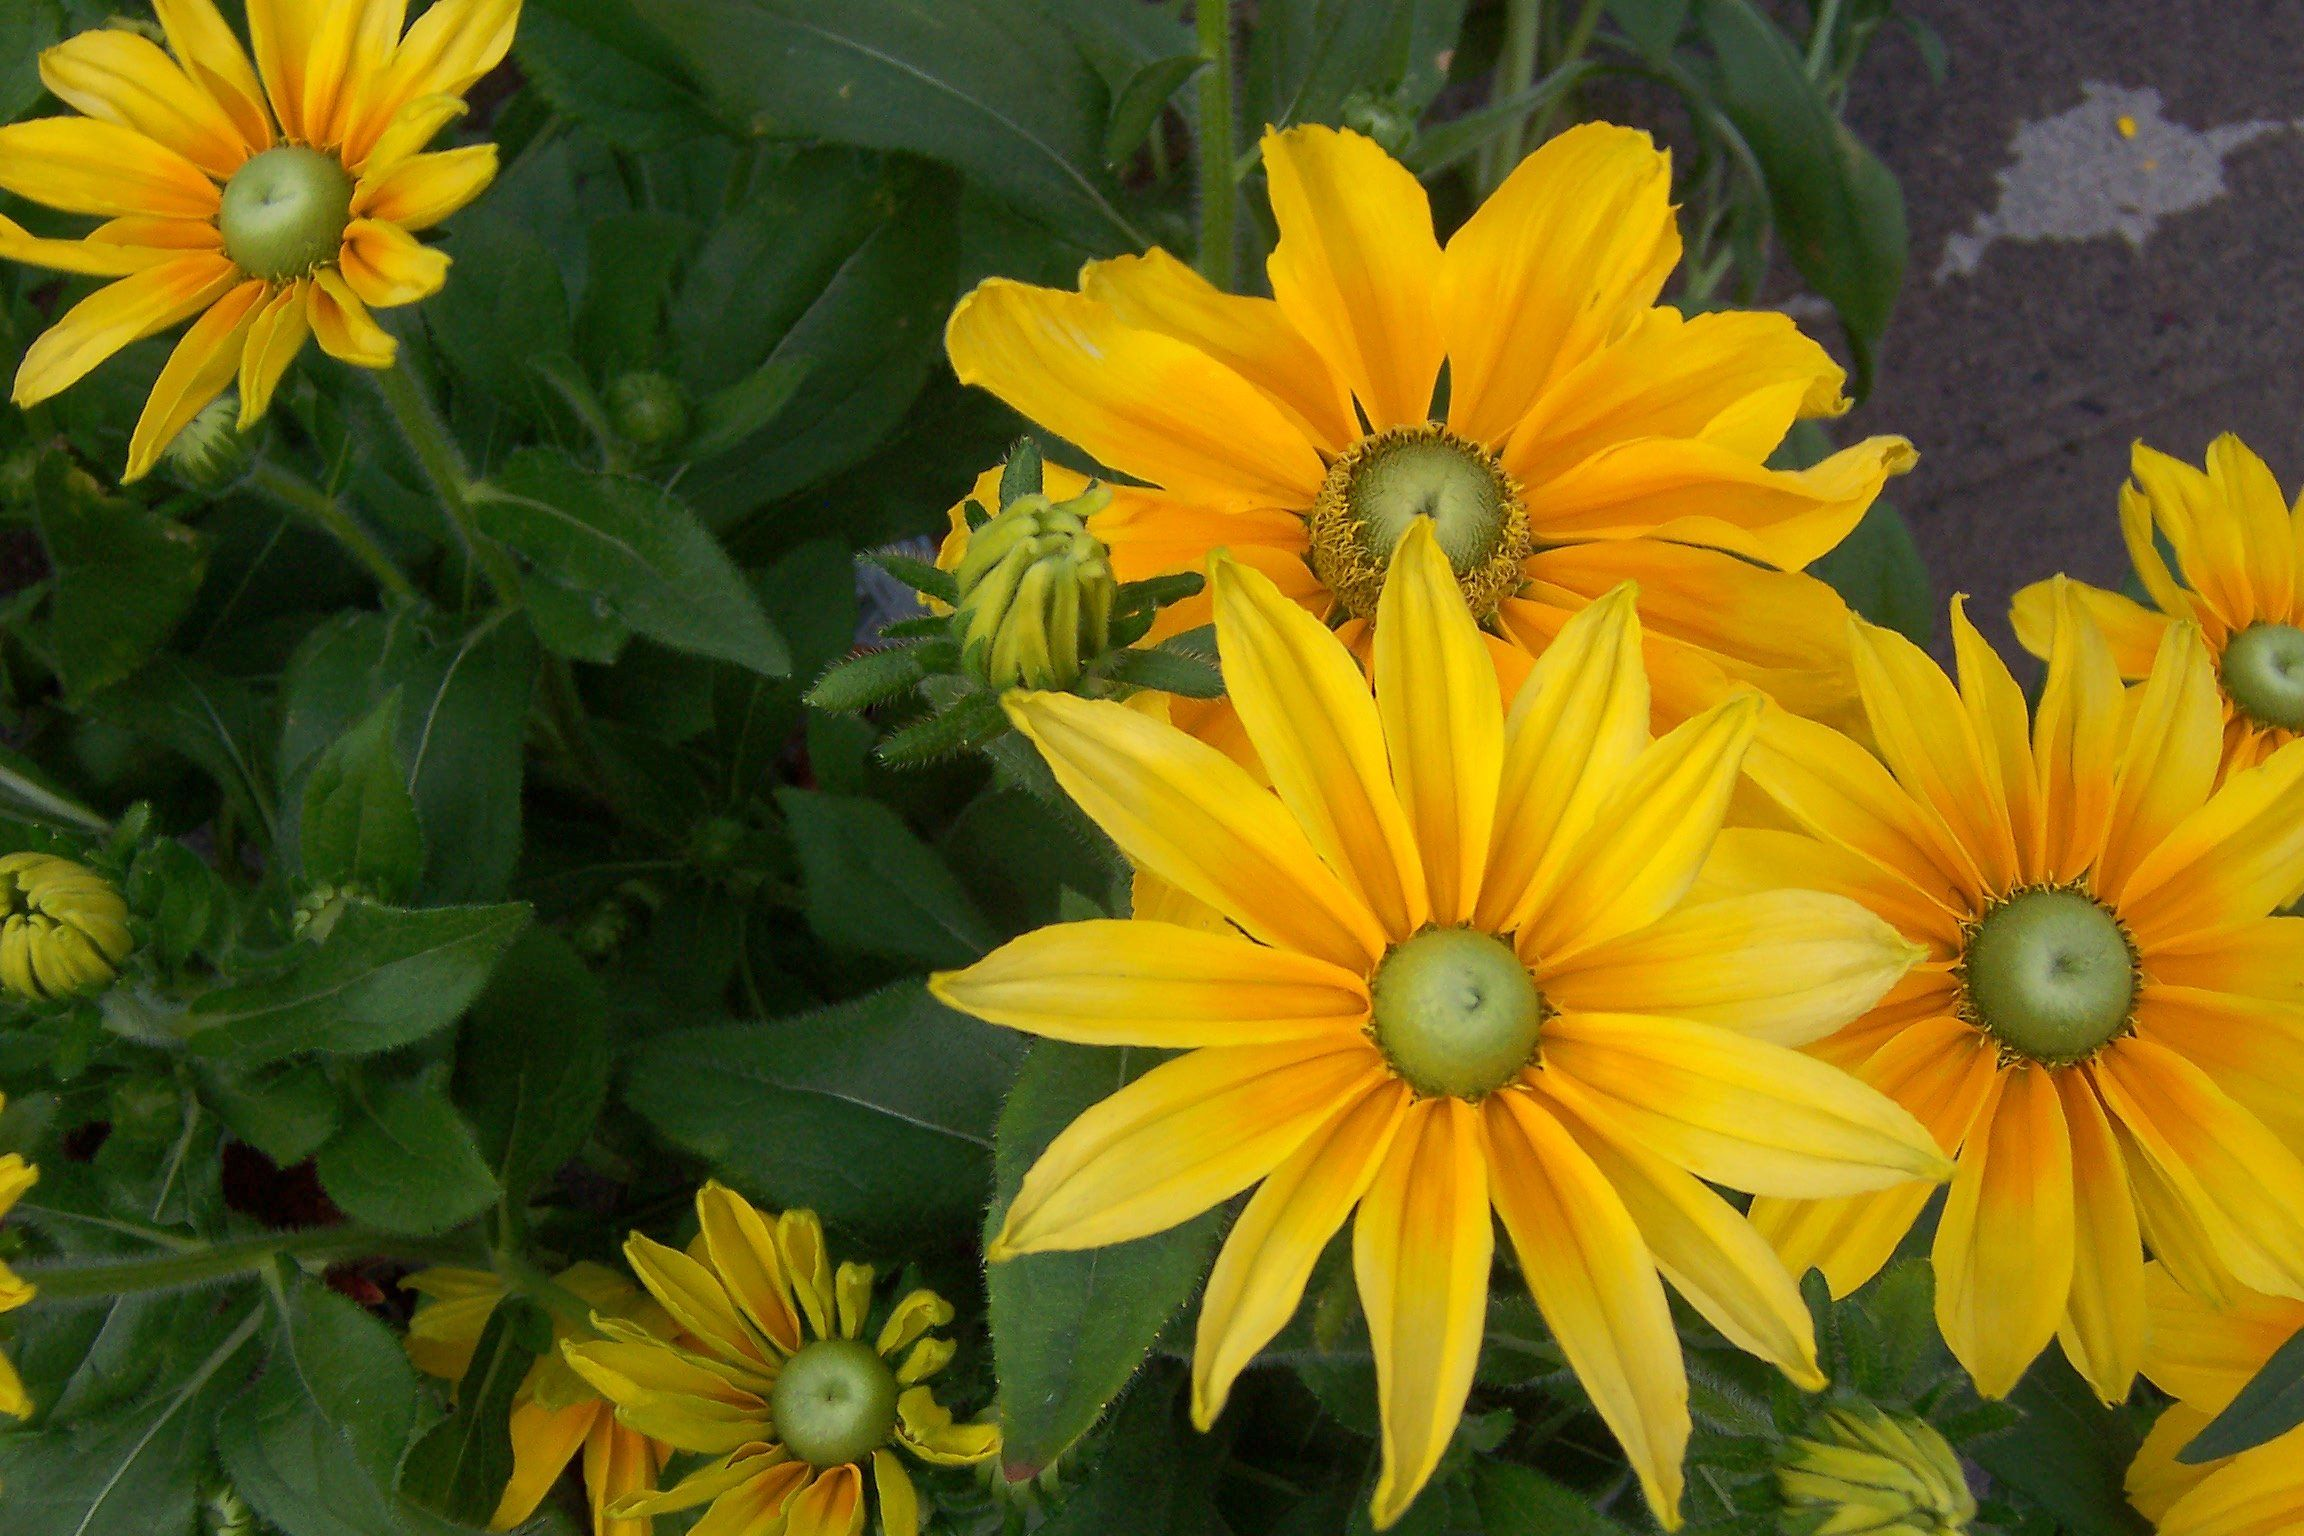 Rudbeckia black eyed susan irish eyes has 2 3 inches golden rudbeckia black eyed susan irish eyes has inches golden yellow flowers with a light green central cone that ages to brown black eye susans are great mightylinksfo